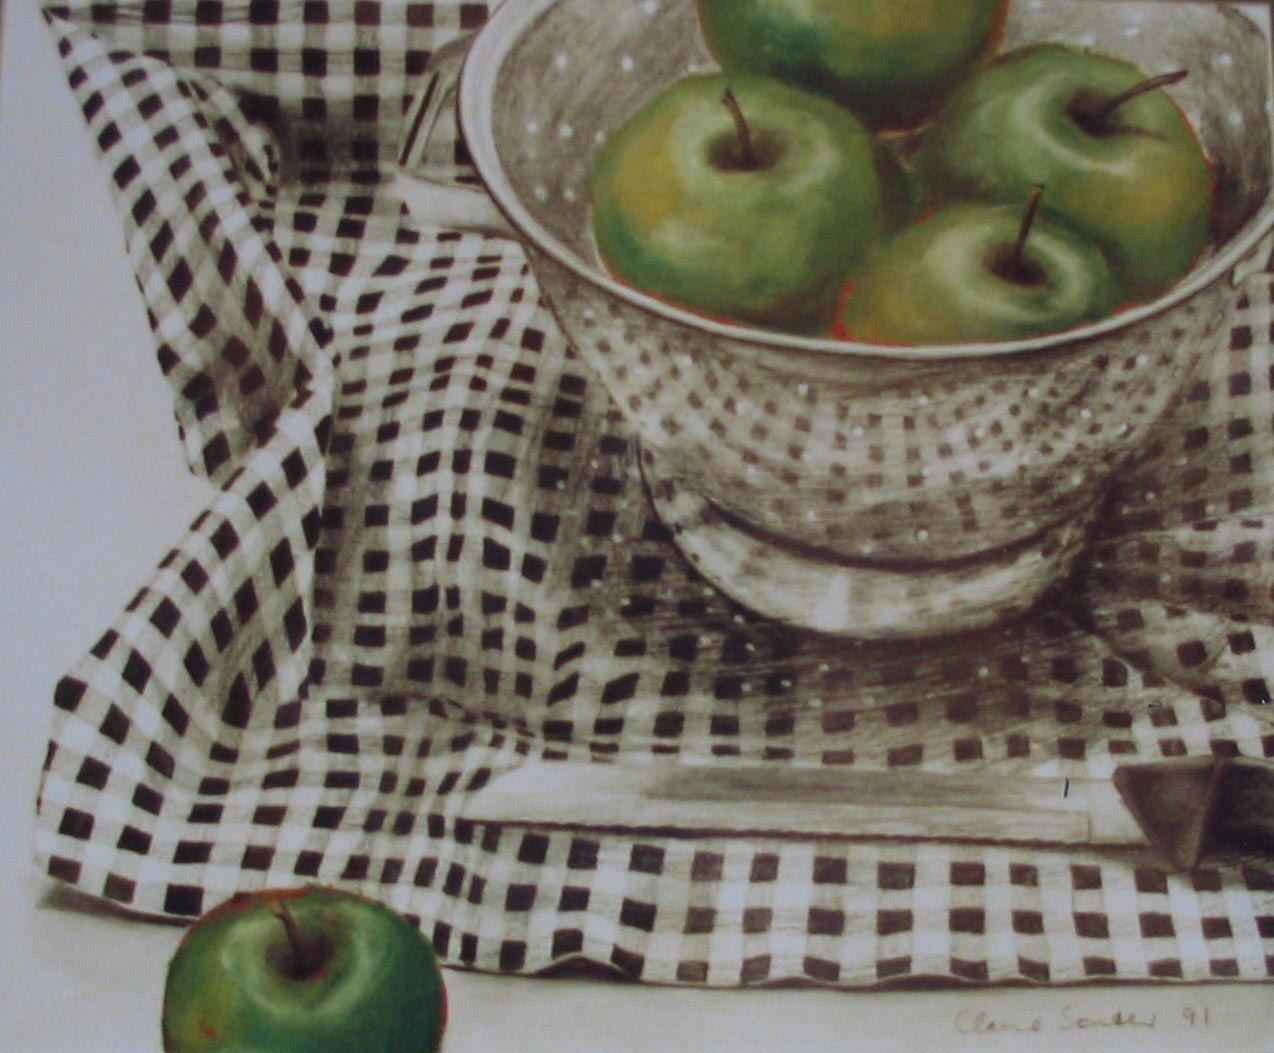 apples and colander